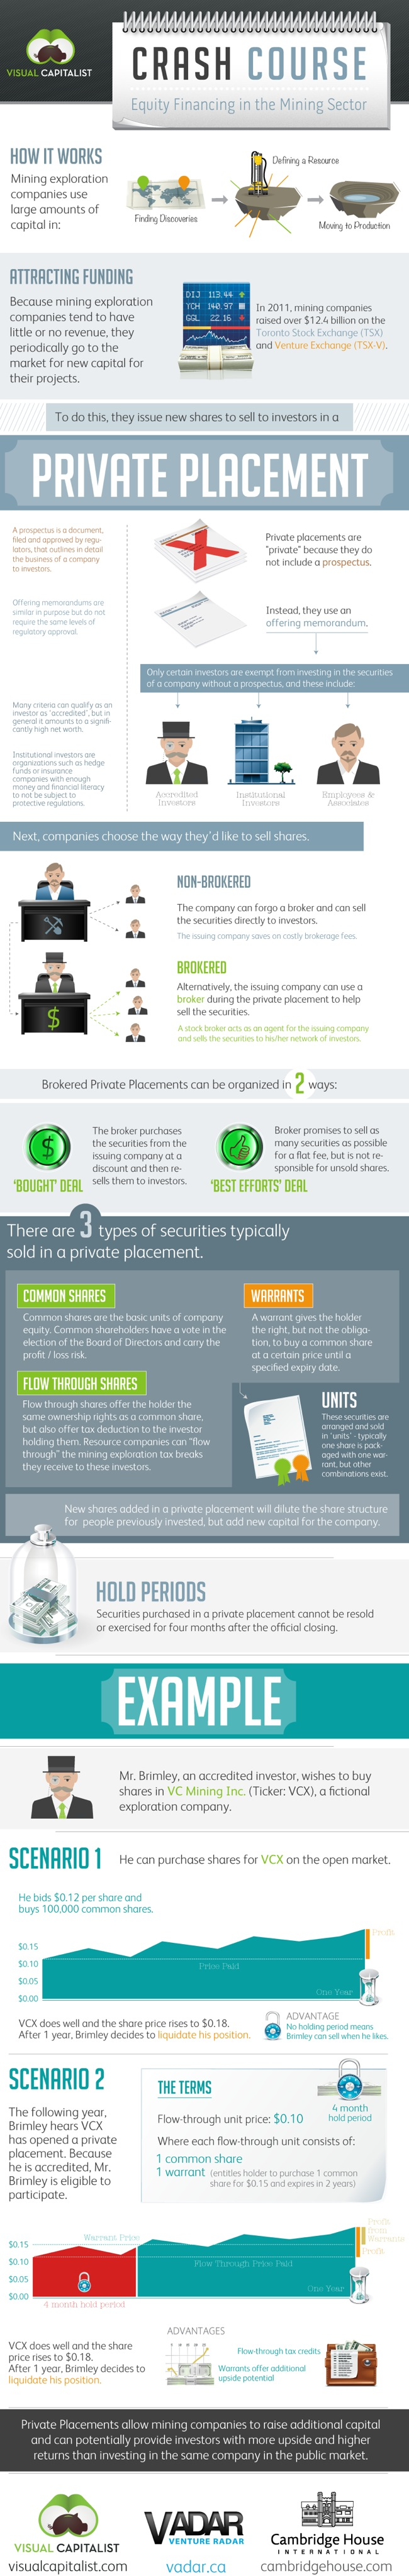 INFOGRAPHIC: A crash course in equity financing for the mining sector